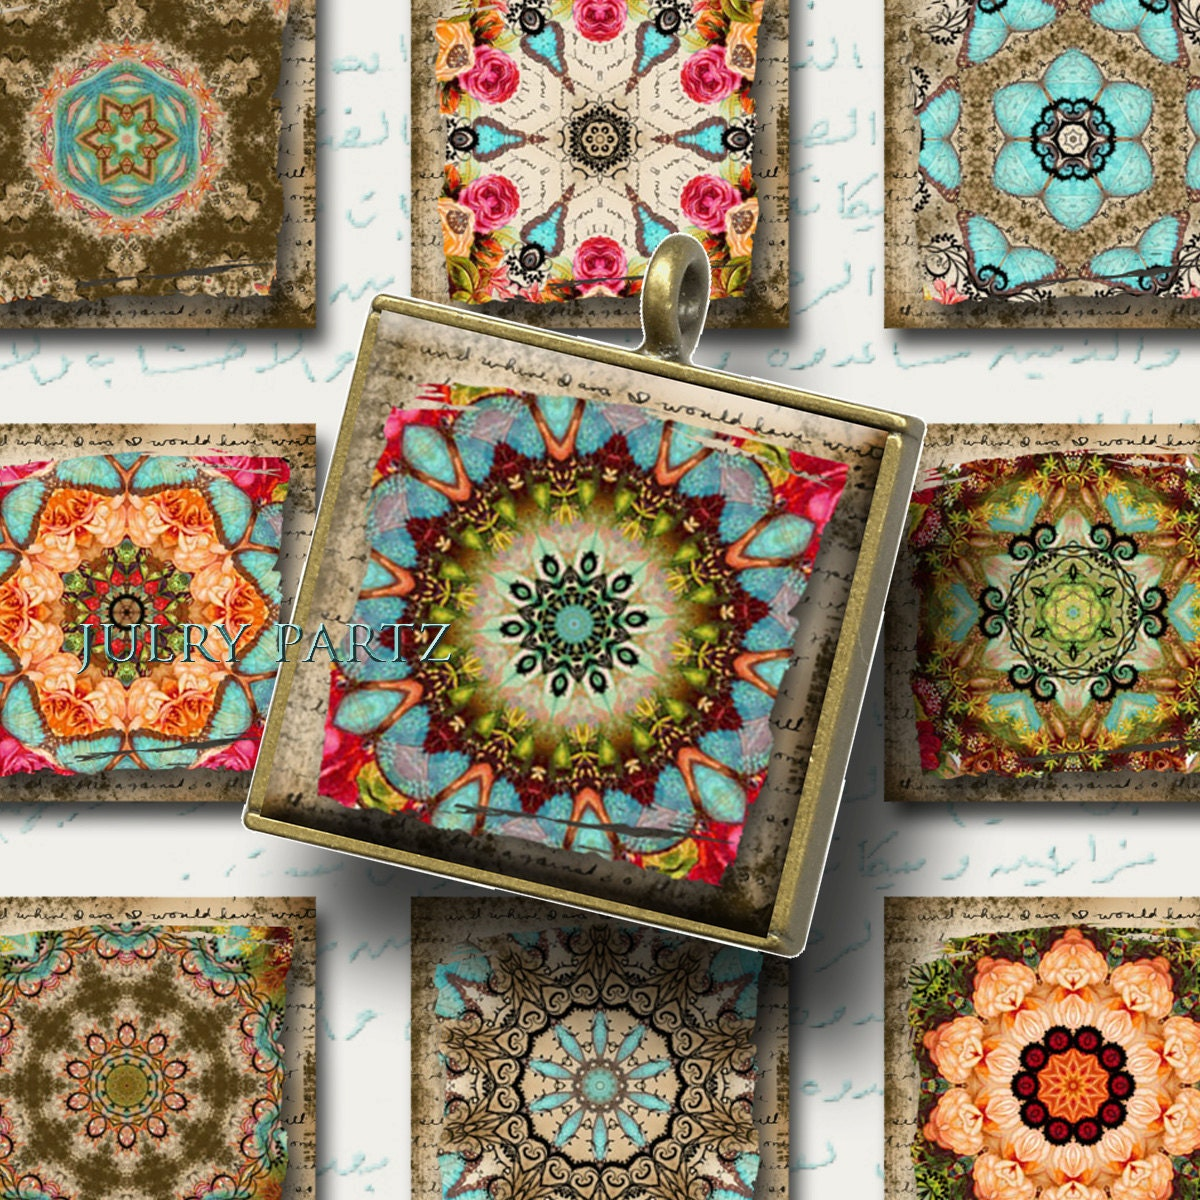 Moroccan Relics 1x1 Printable Digital Images Cards Gift